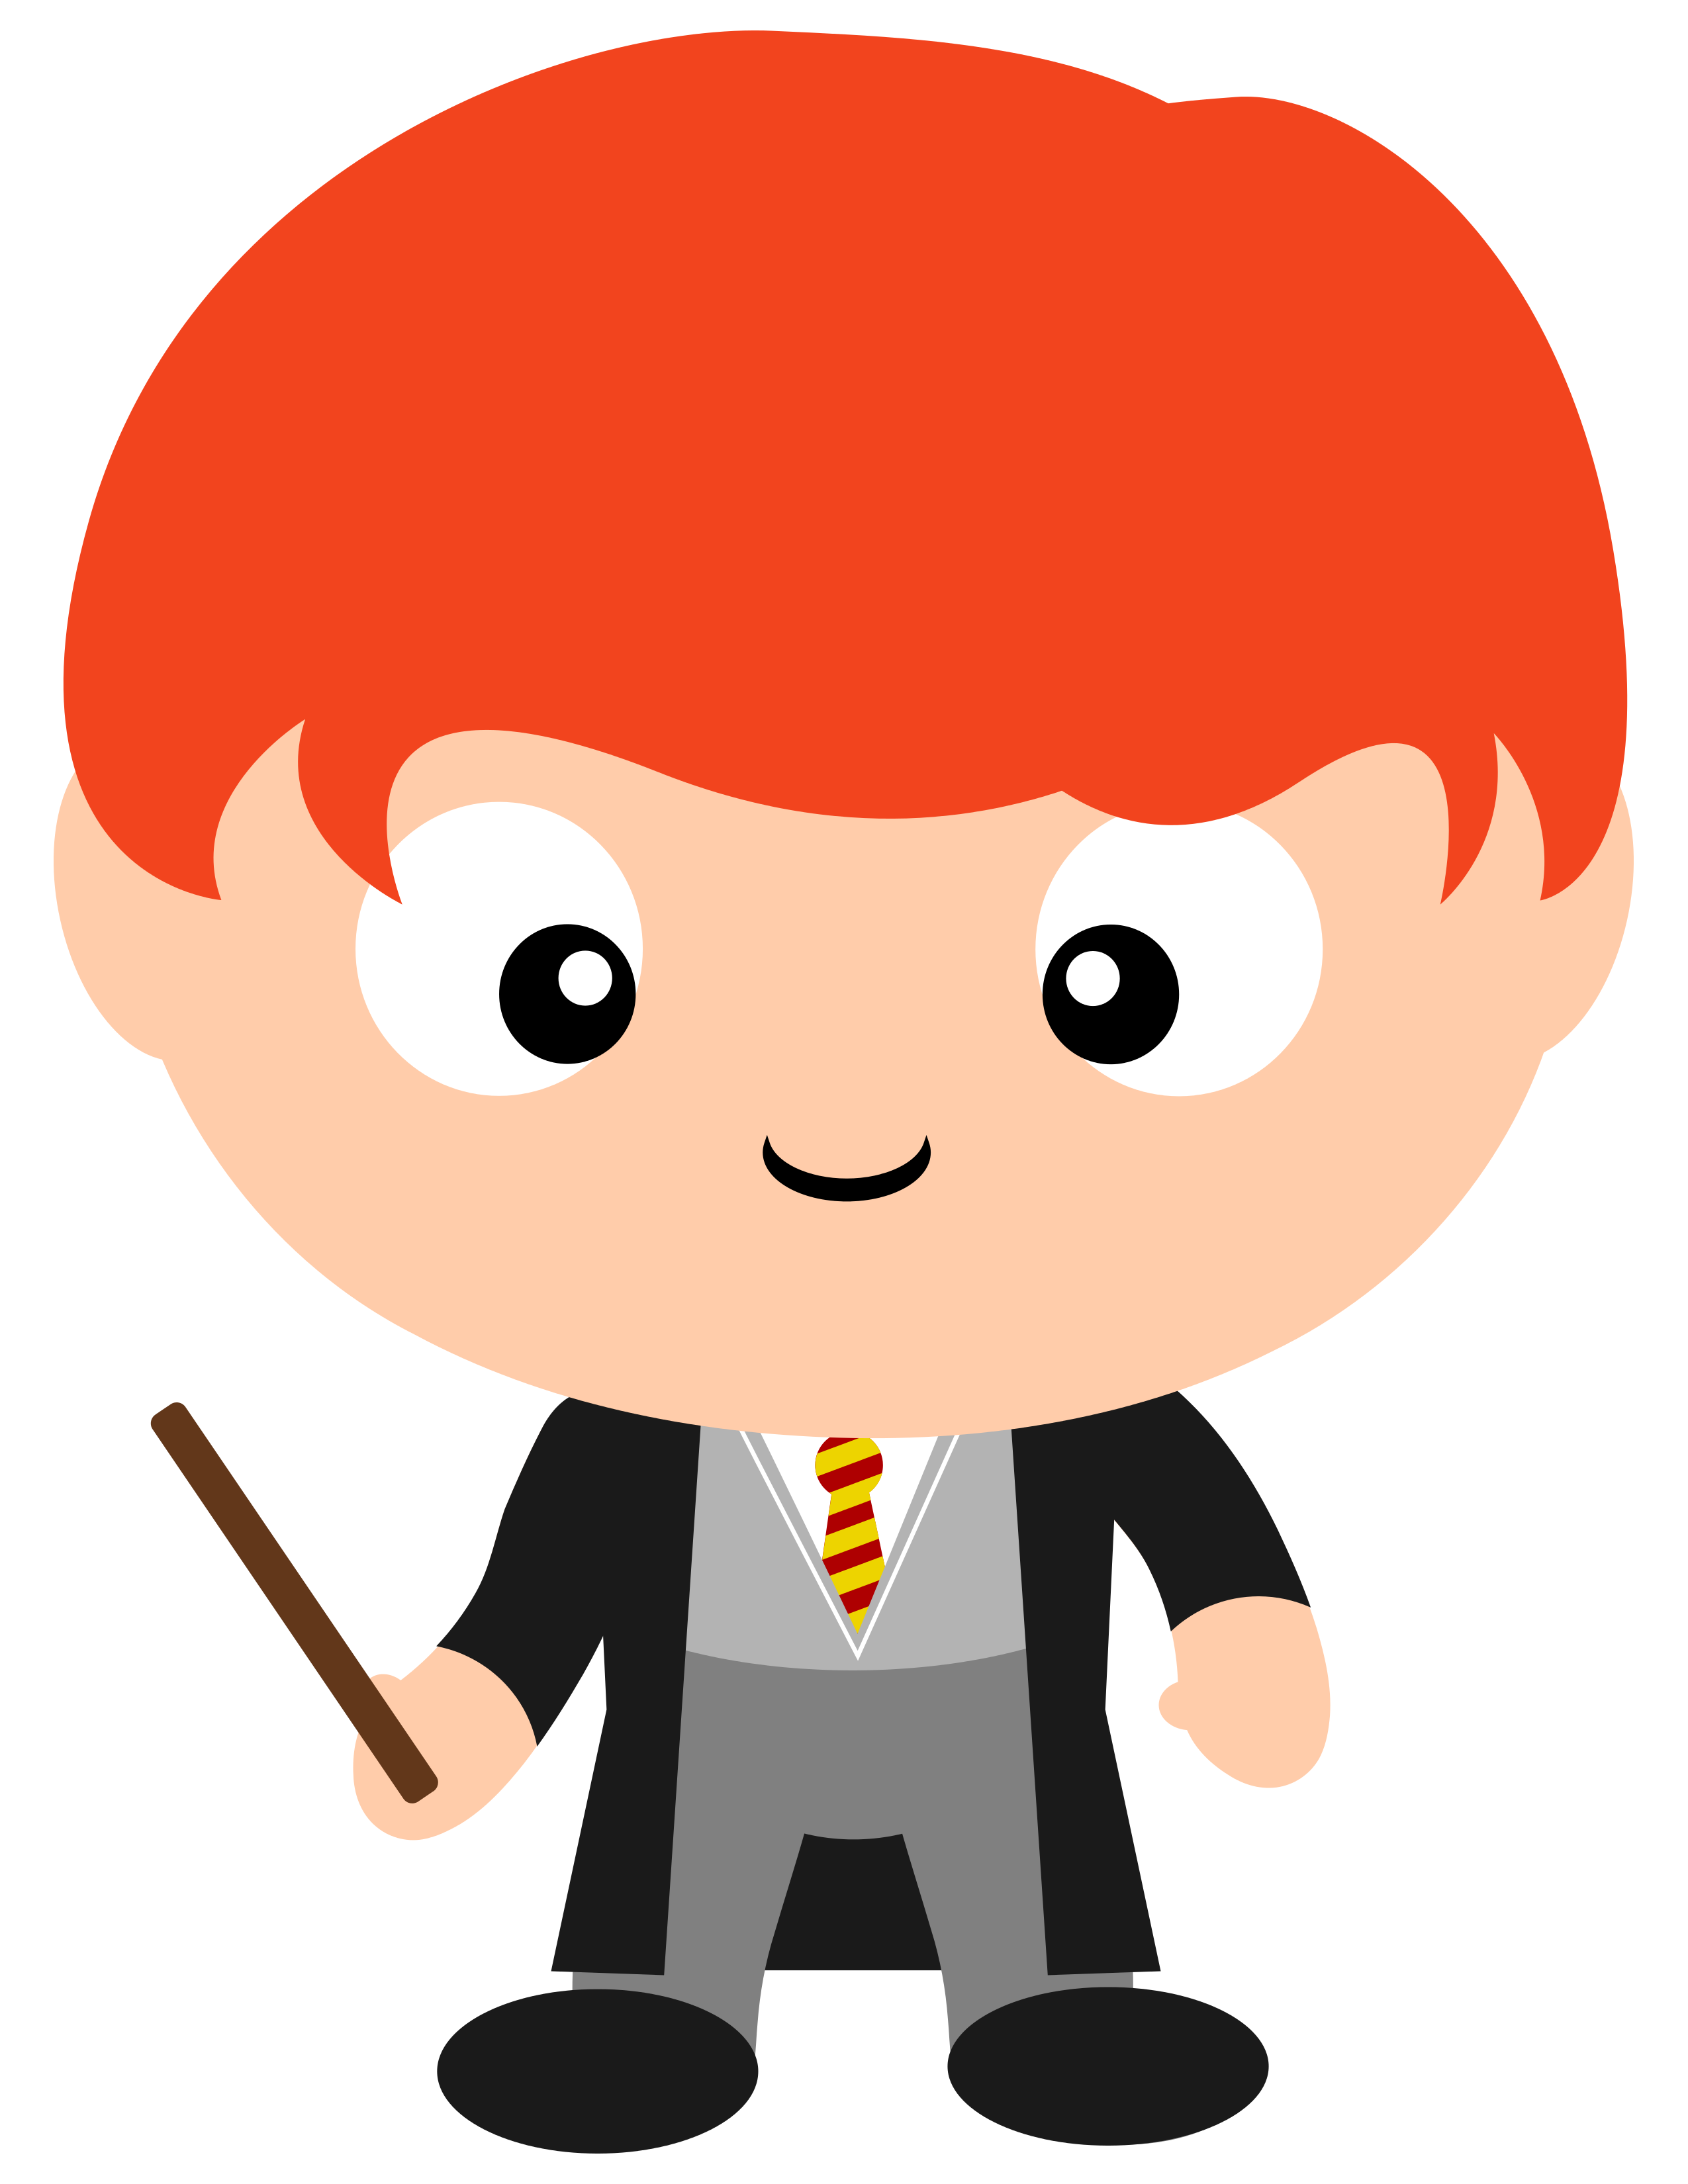 Markers clipart kid. Harry potter dolores umbridge